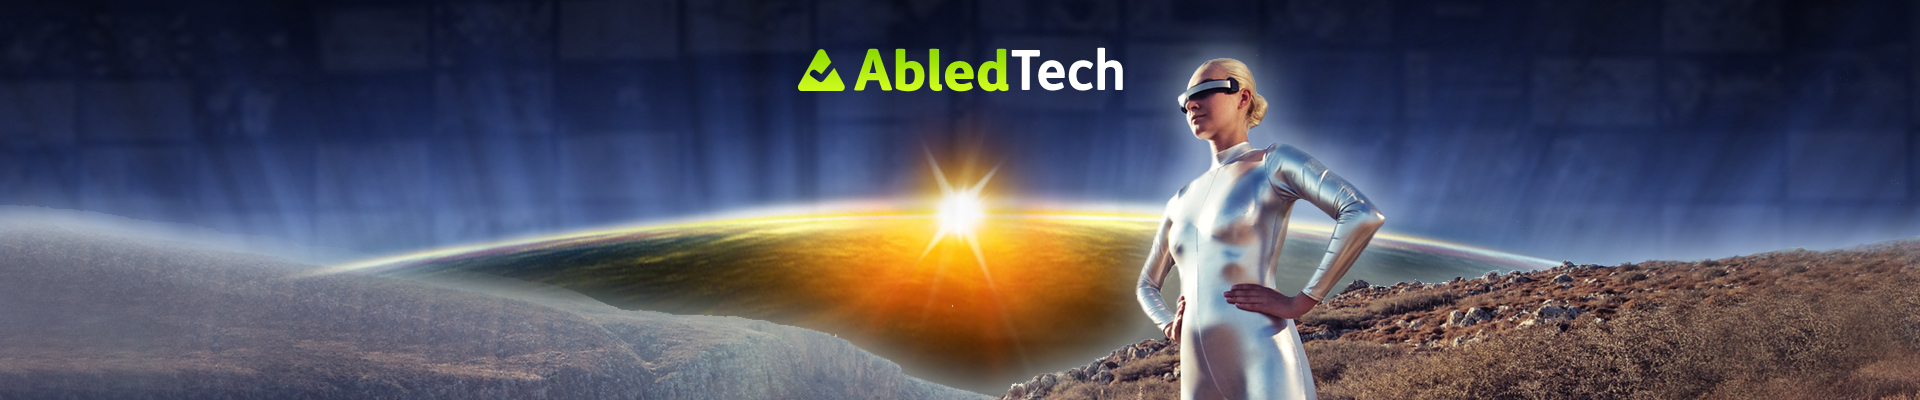 AbledTech network link shows a woman in a silver bodysuit with virtual reality goggles standing on a hillside